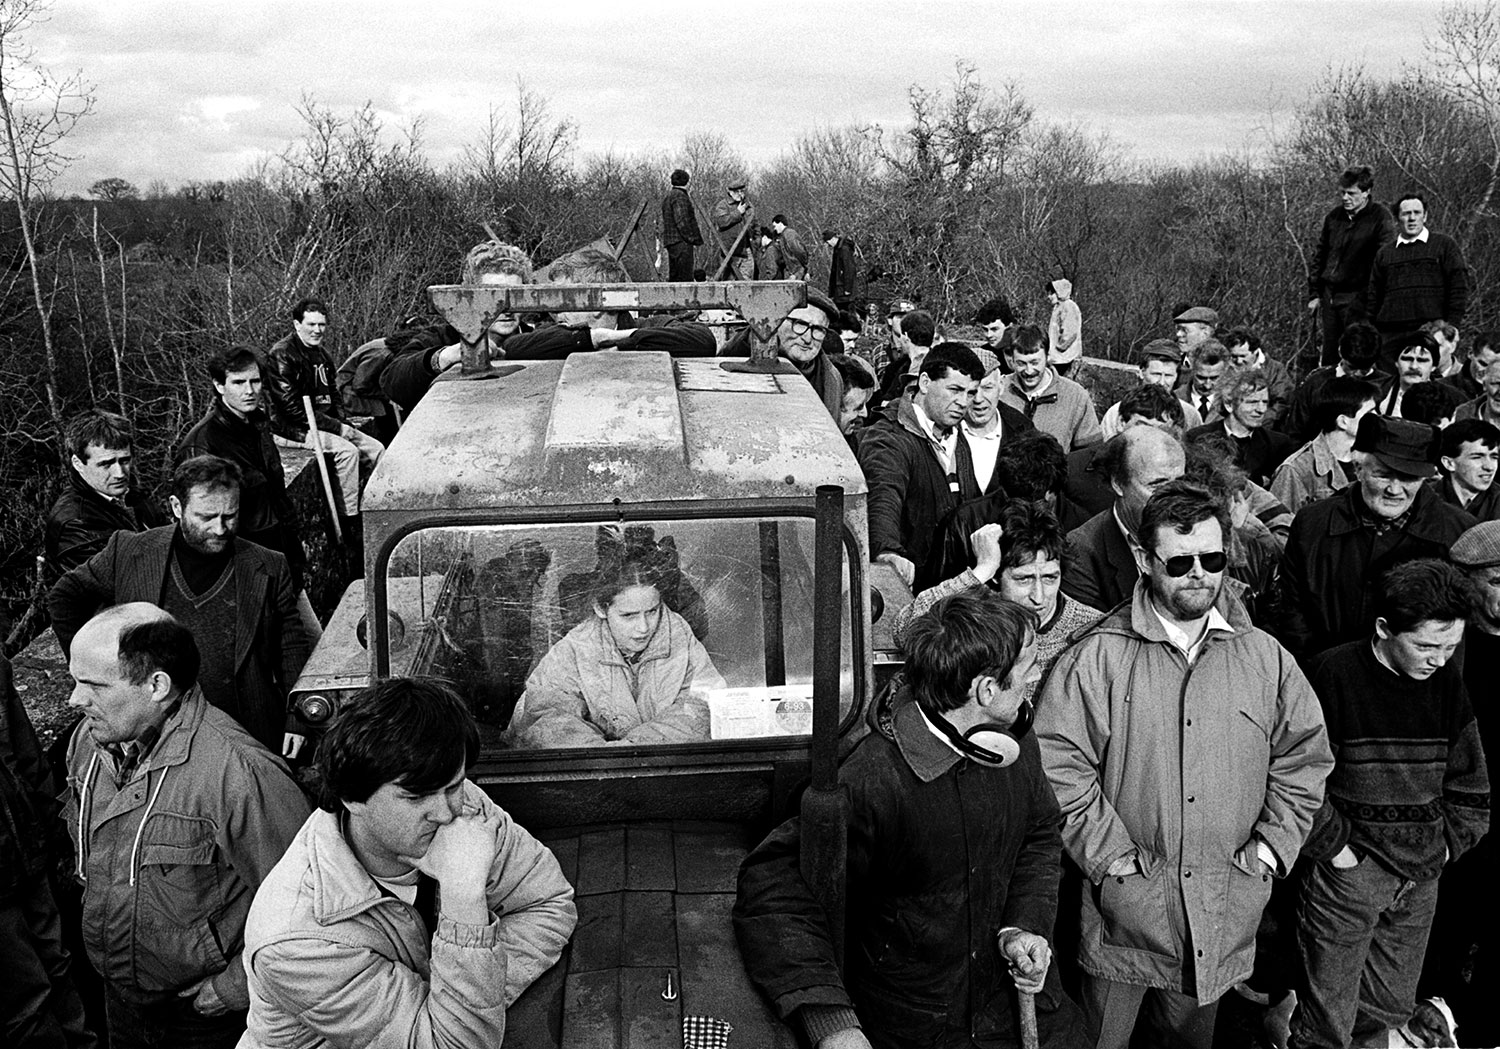 A crowd of men of all ages stand on a barricaded bridge looking at something off-screen. There is a lone girl sitting in a tractor in the middle of the crowd.